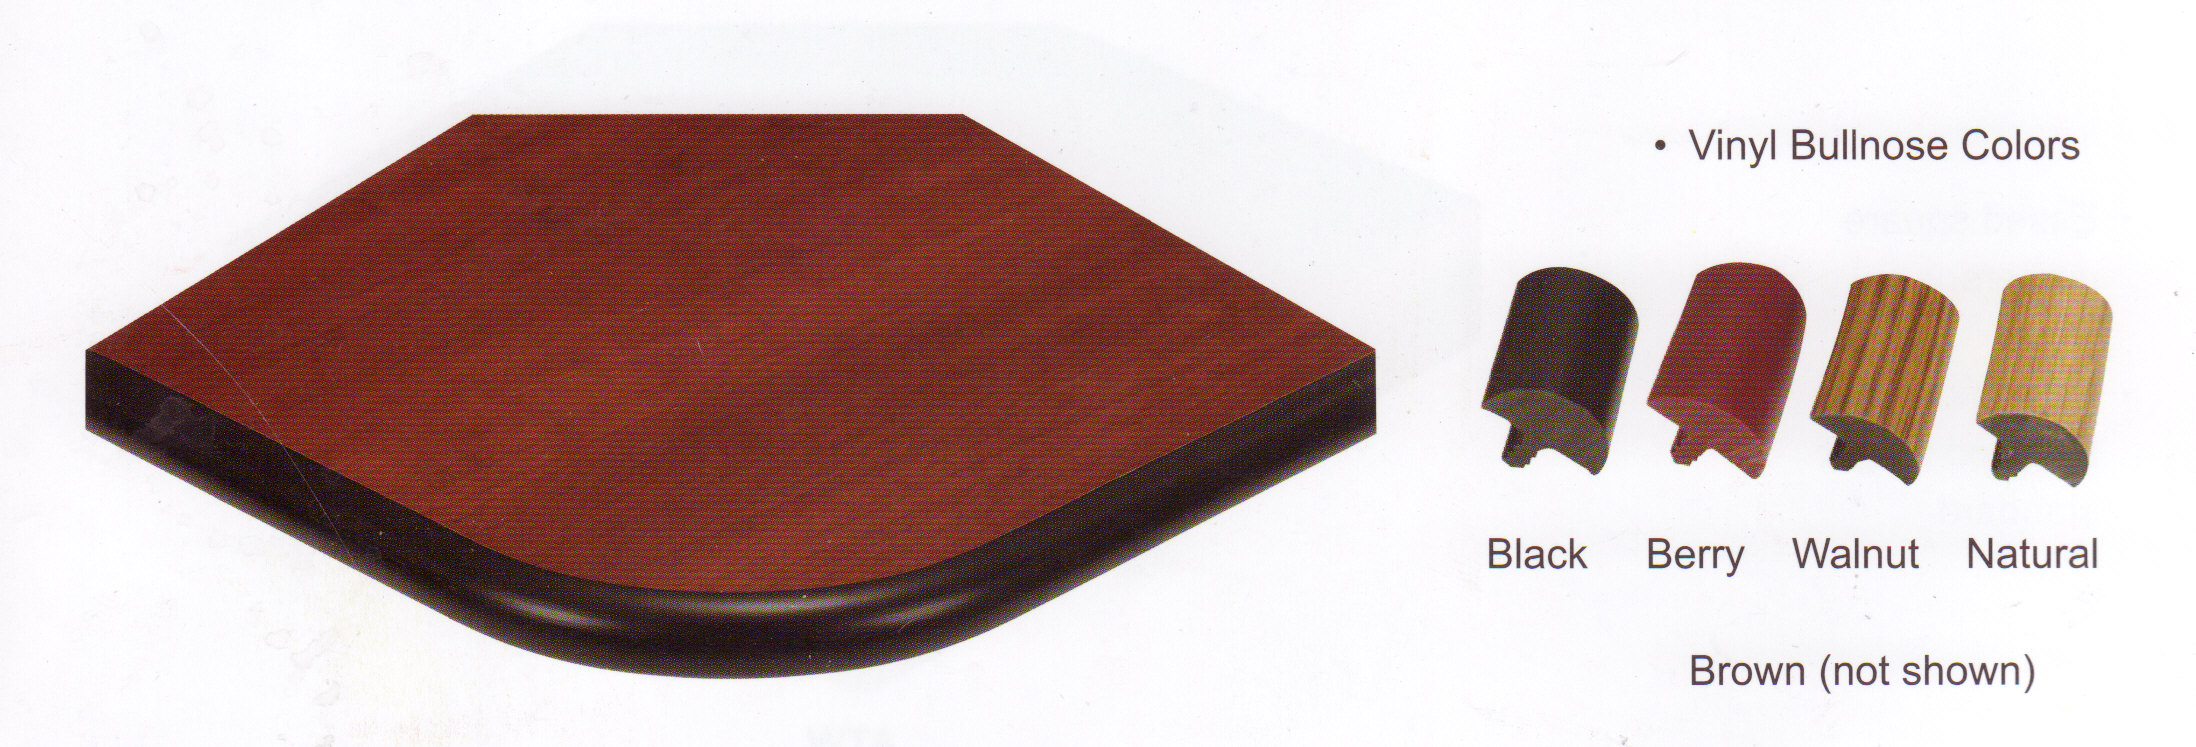 Laminated Table Tops With Bull Nose EdgeRestaurant Table Tops With - Laminate restaurant table tops